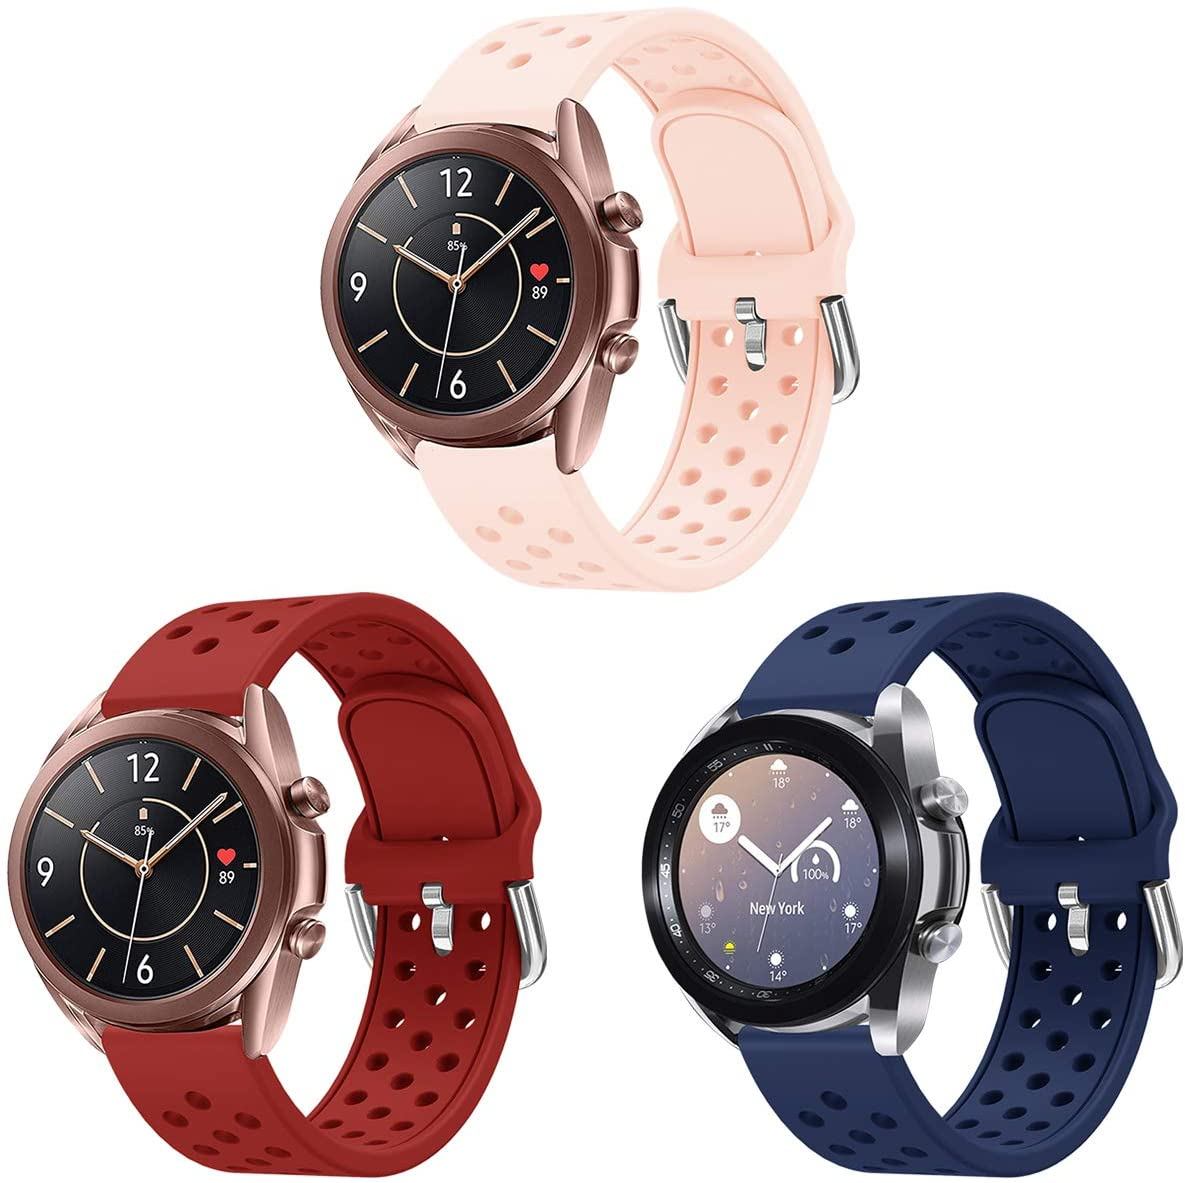 SYXINN Compatible with Samsung Galaxy Watch3 41mm Band Silicone 20mm Quick Release Watch Bands for Samsung Galaxy Watch Active 2 40mm 44mm/Galaxy Watch 42mm/Gear Sport/S2 Classic/Garmin Vivoactive 3